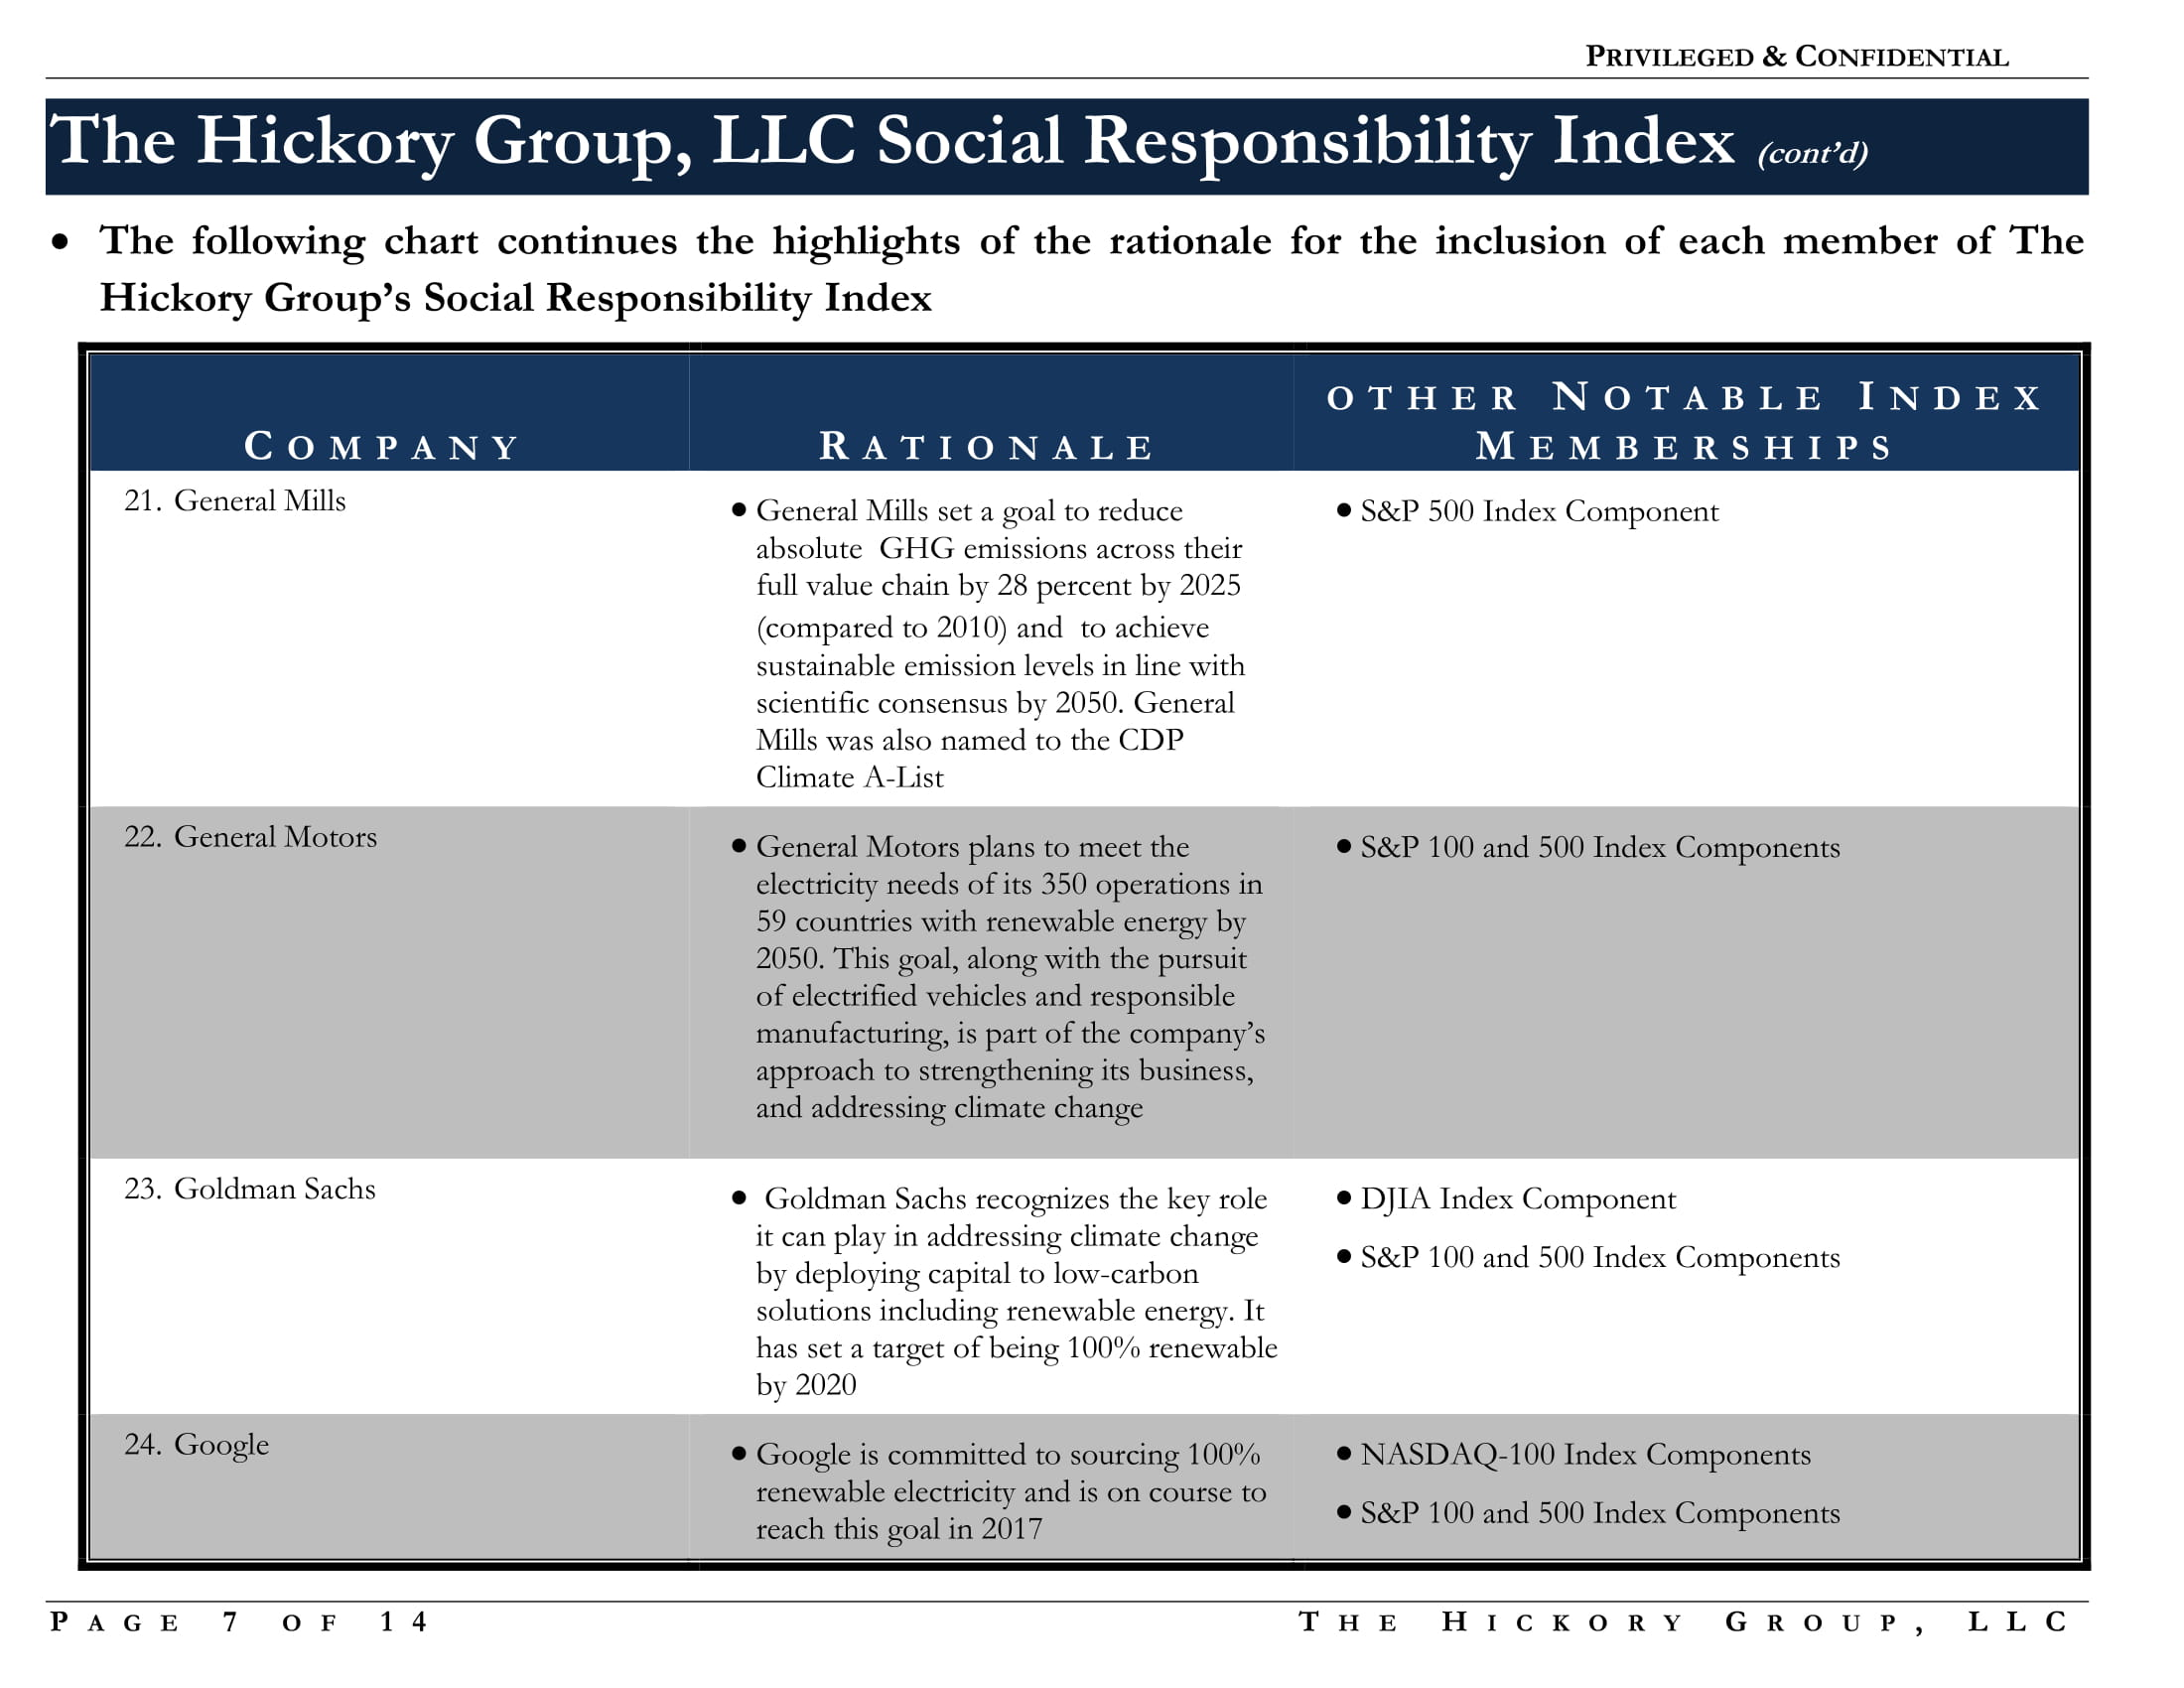 FINAL Social Responsibility Index  Notes and Rationale (7 October 2017) Privileged and Confidential-07.jpg